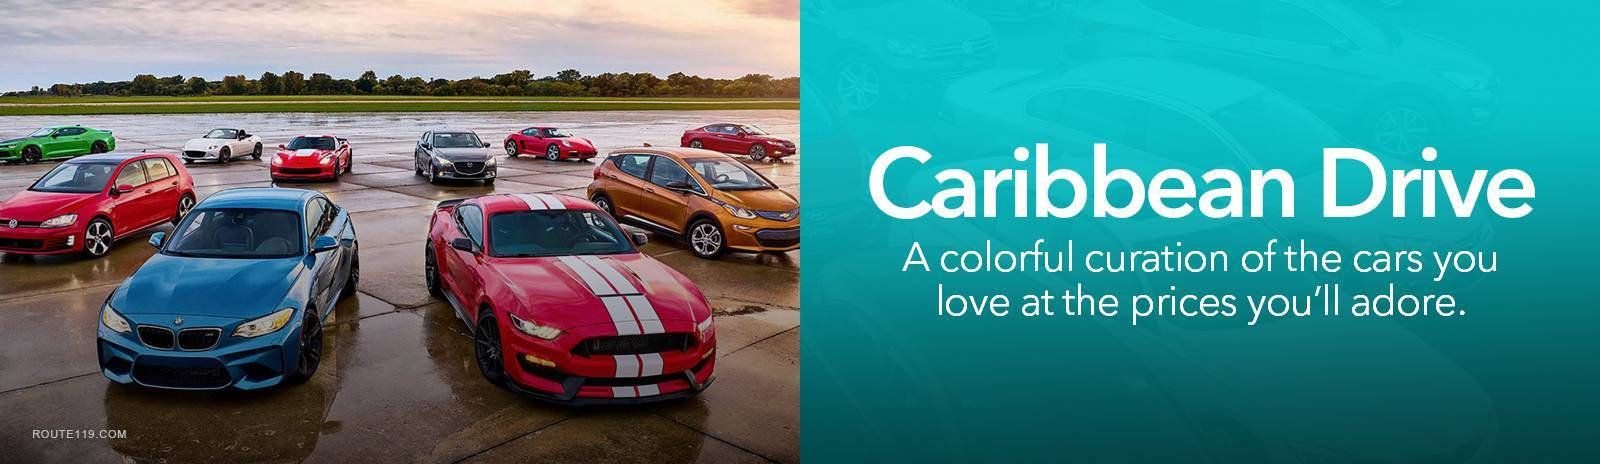 Caribbean Drive - A colorful curation of the cars you love at the prices you'll adore.